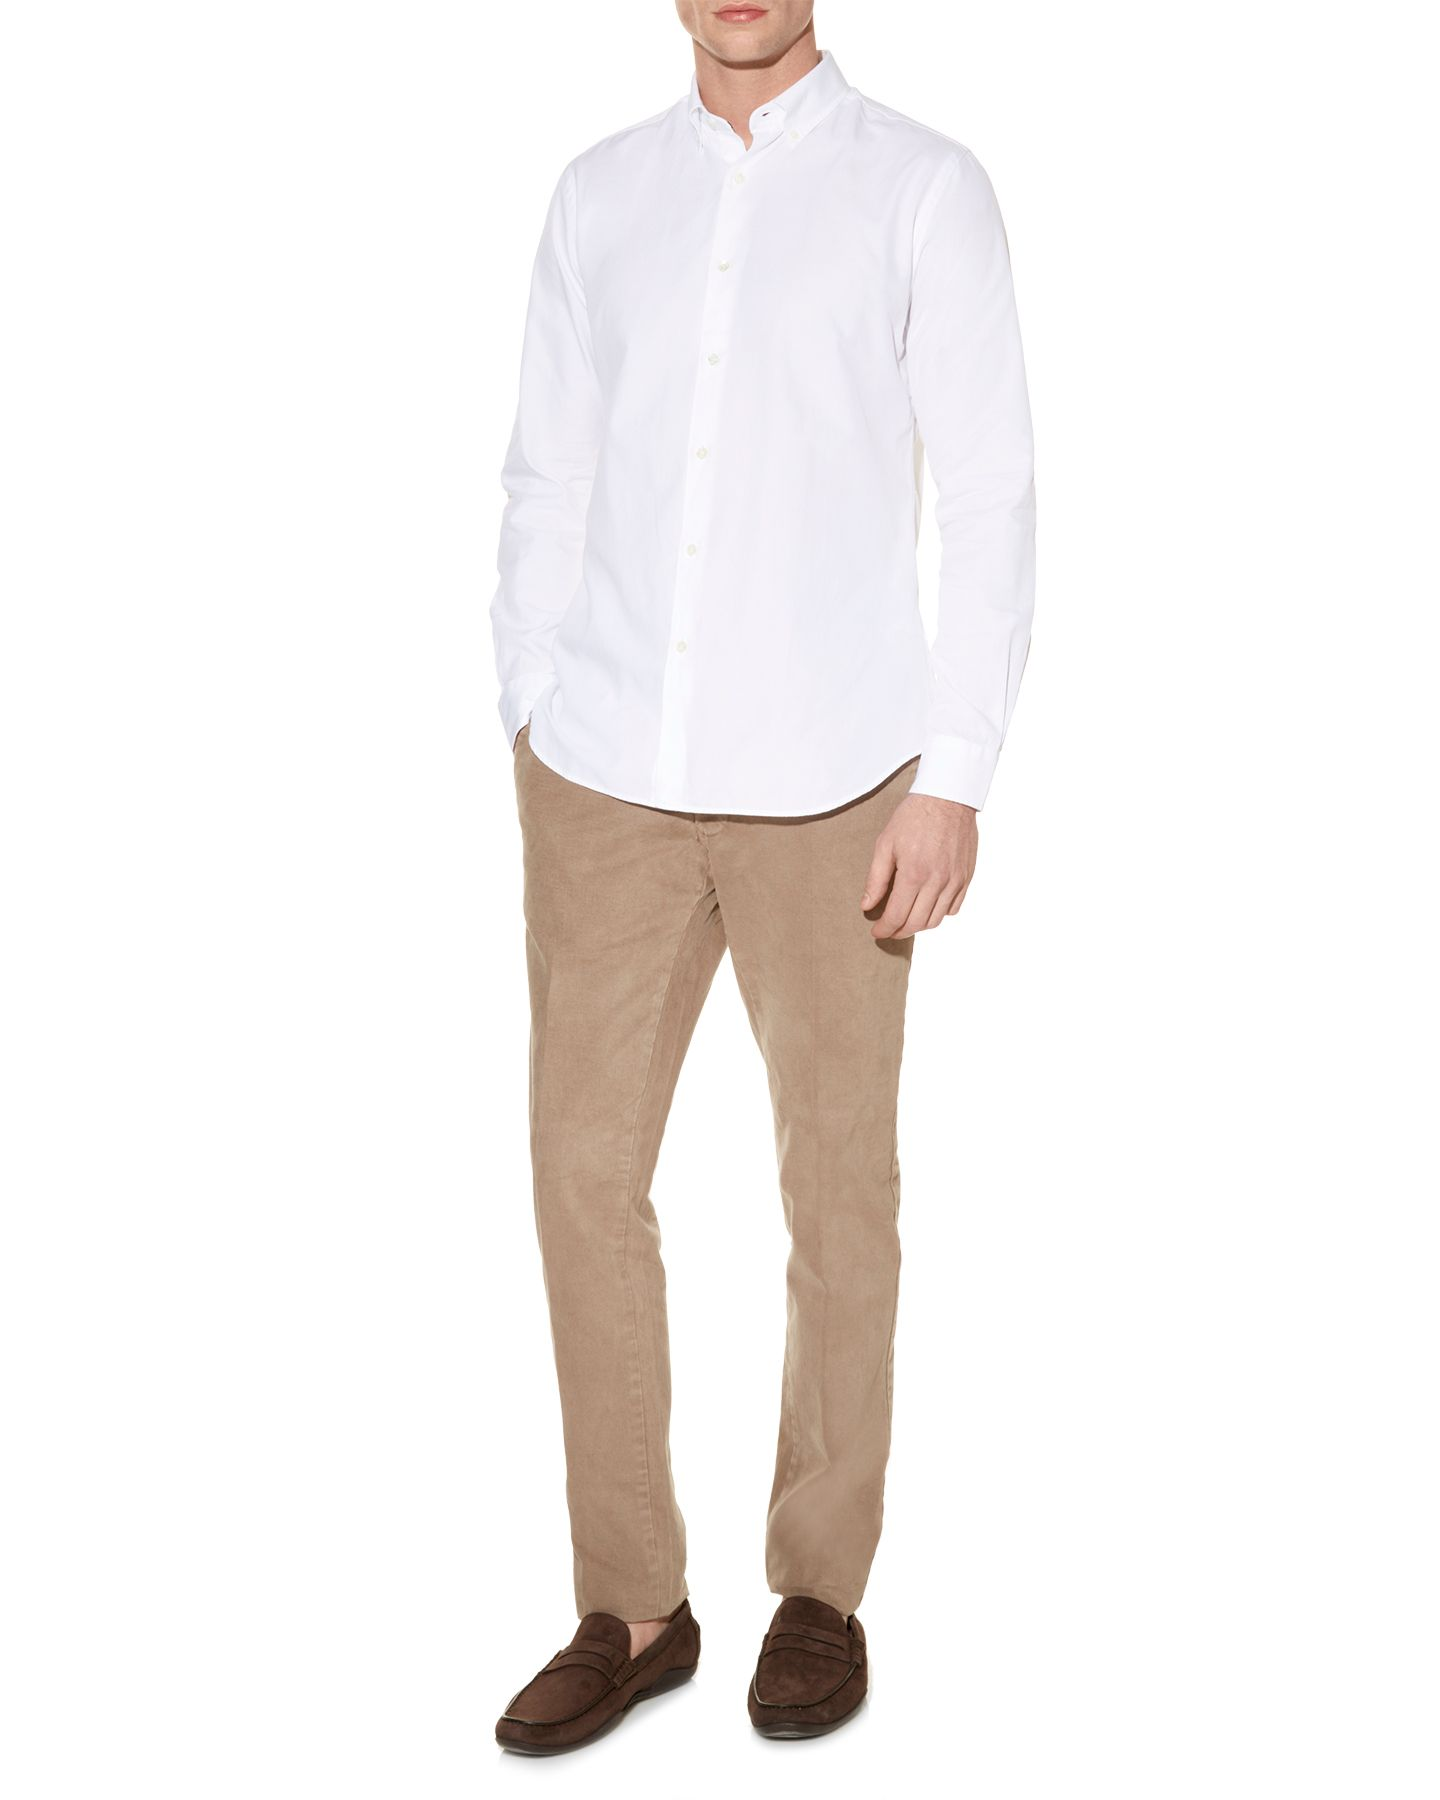 Landor logo long sleeve shirt